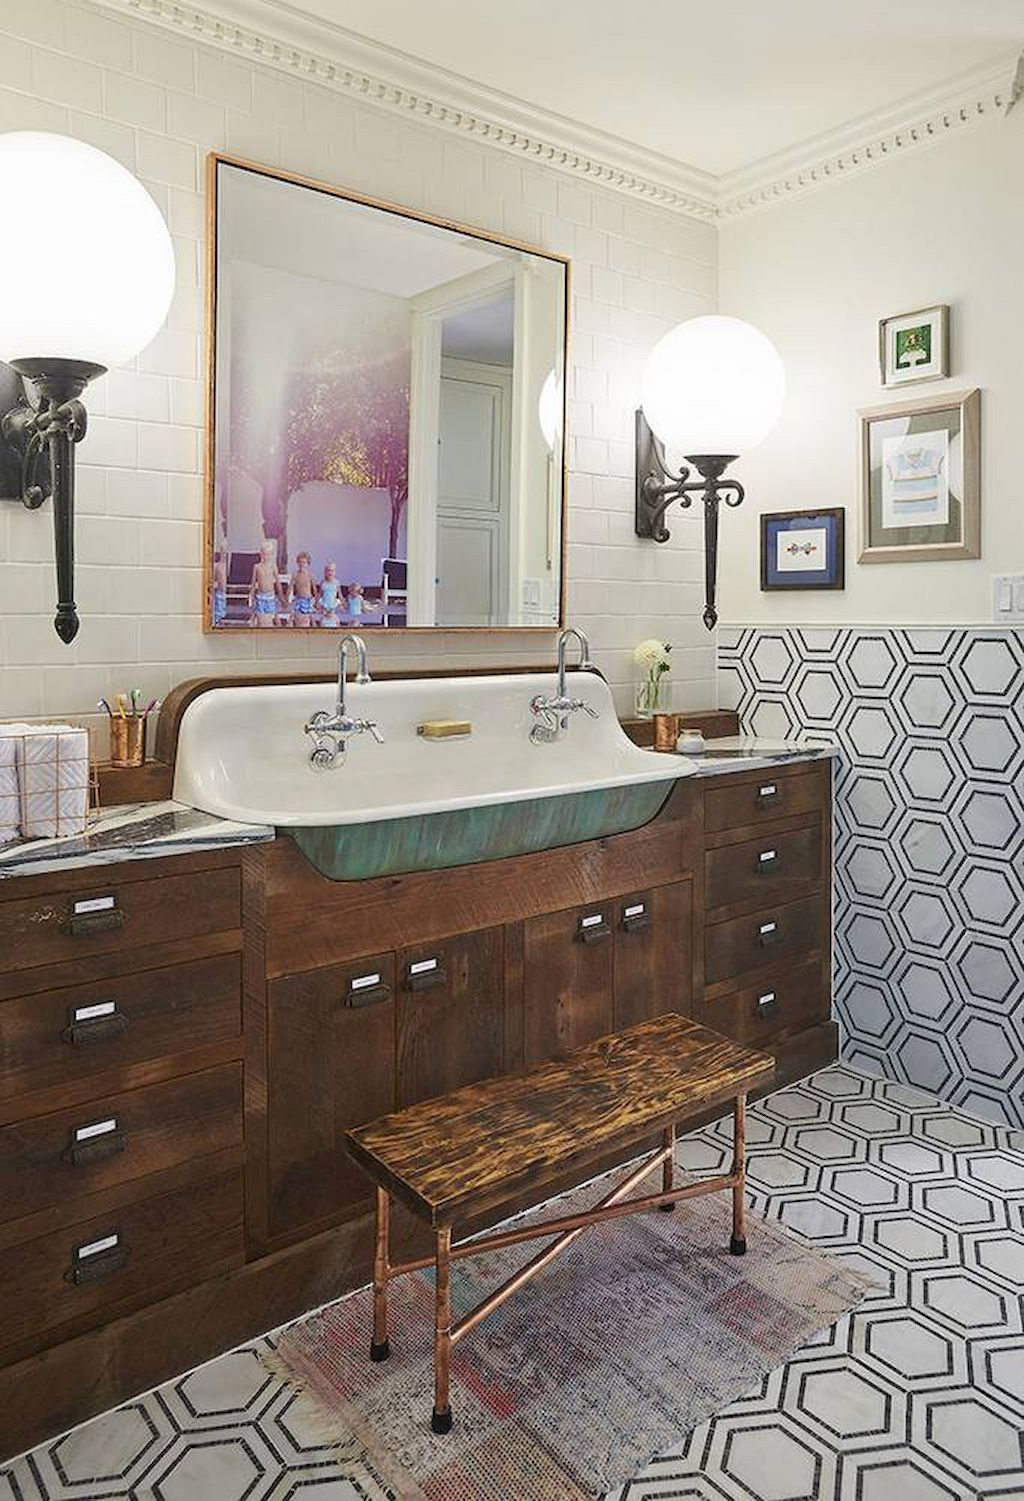 eclectic bathroom ideas on a budget eclectic bathroom eclectic